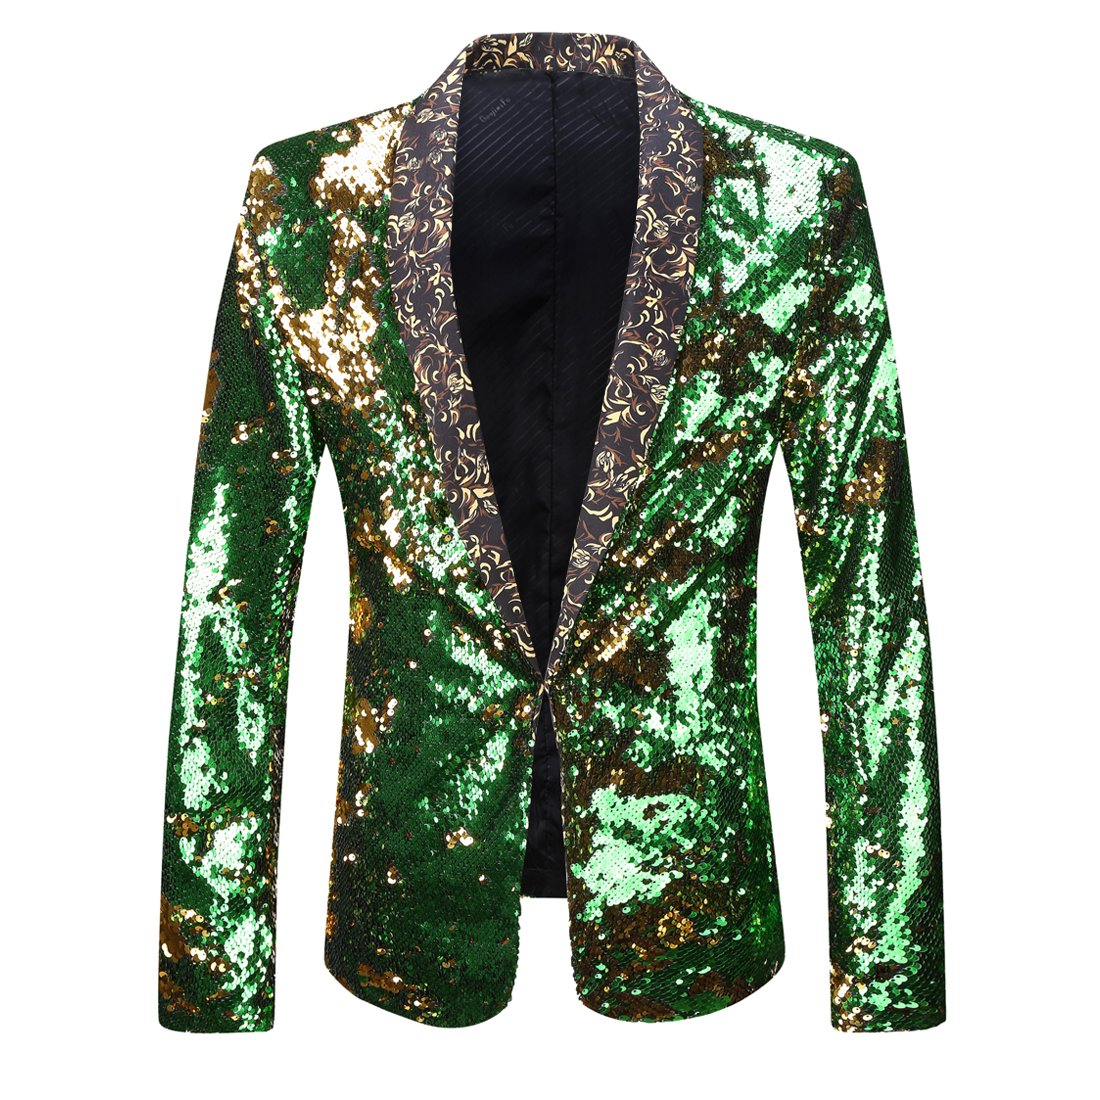 PYJTRL Men Stylish Two Color Conversion Shiny Sequins Blazer Suit Jacket